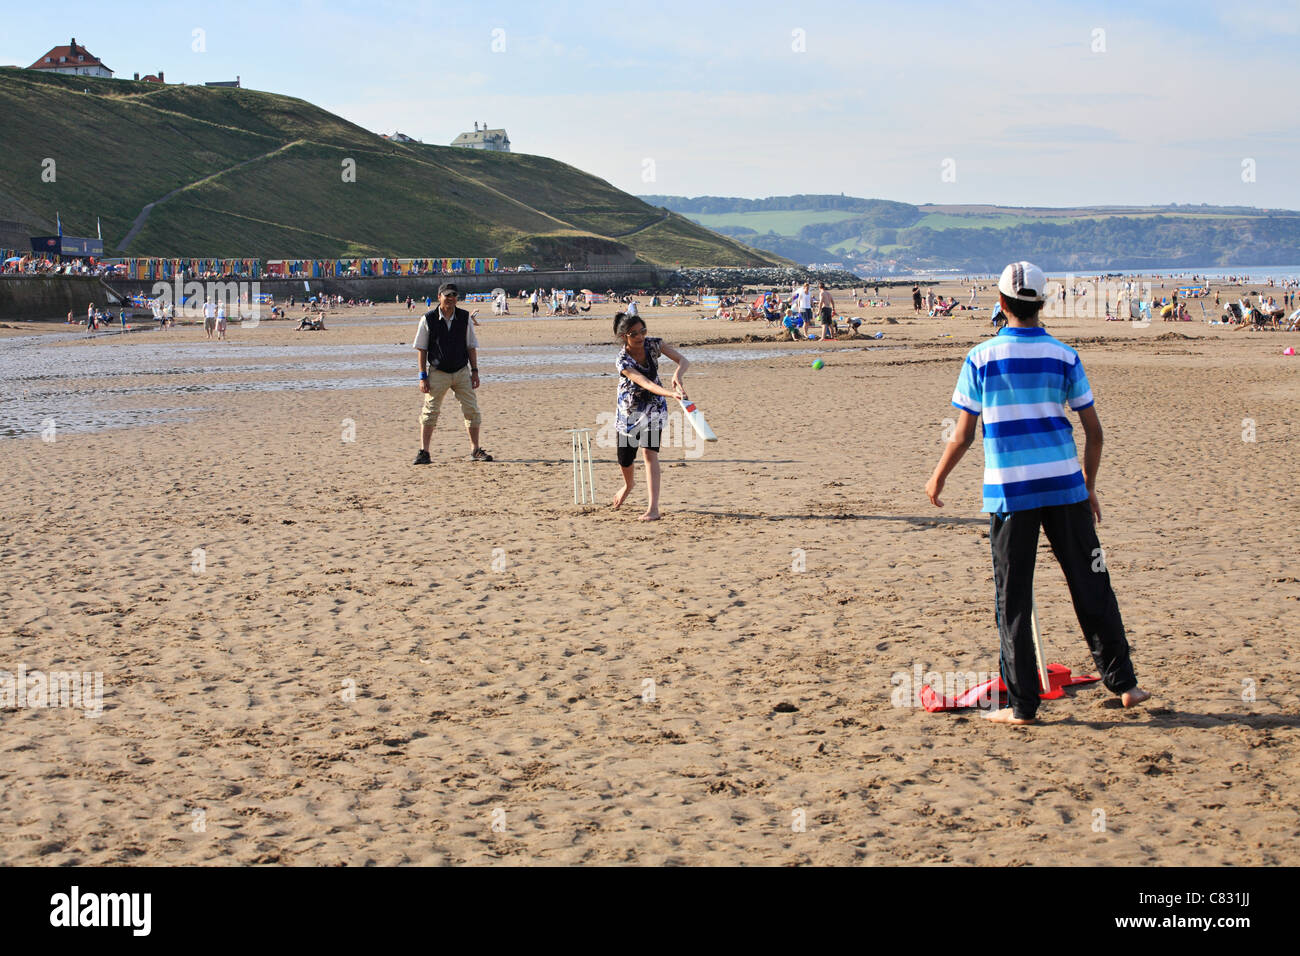 family-of-asian-appearance-playing-cricket-on-the-beach-at-whitby-C831JJ.jpg